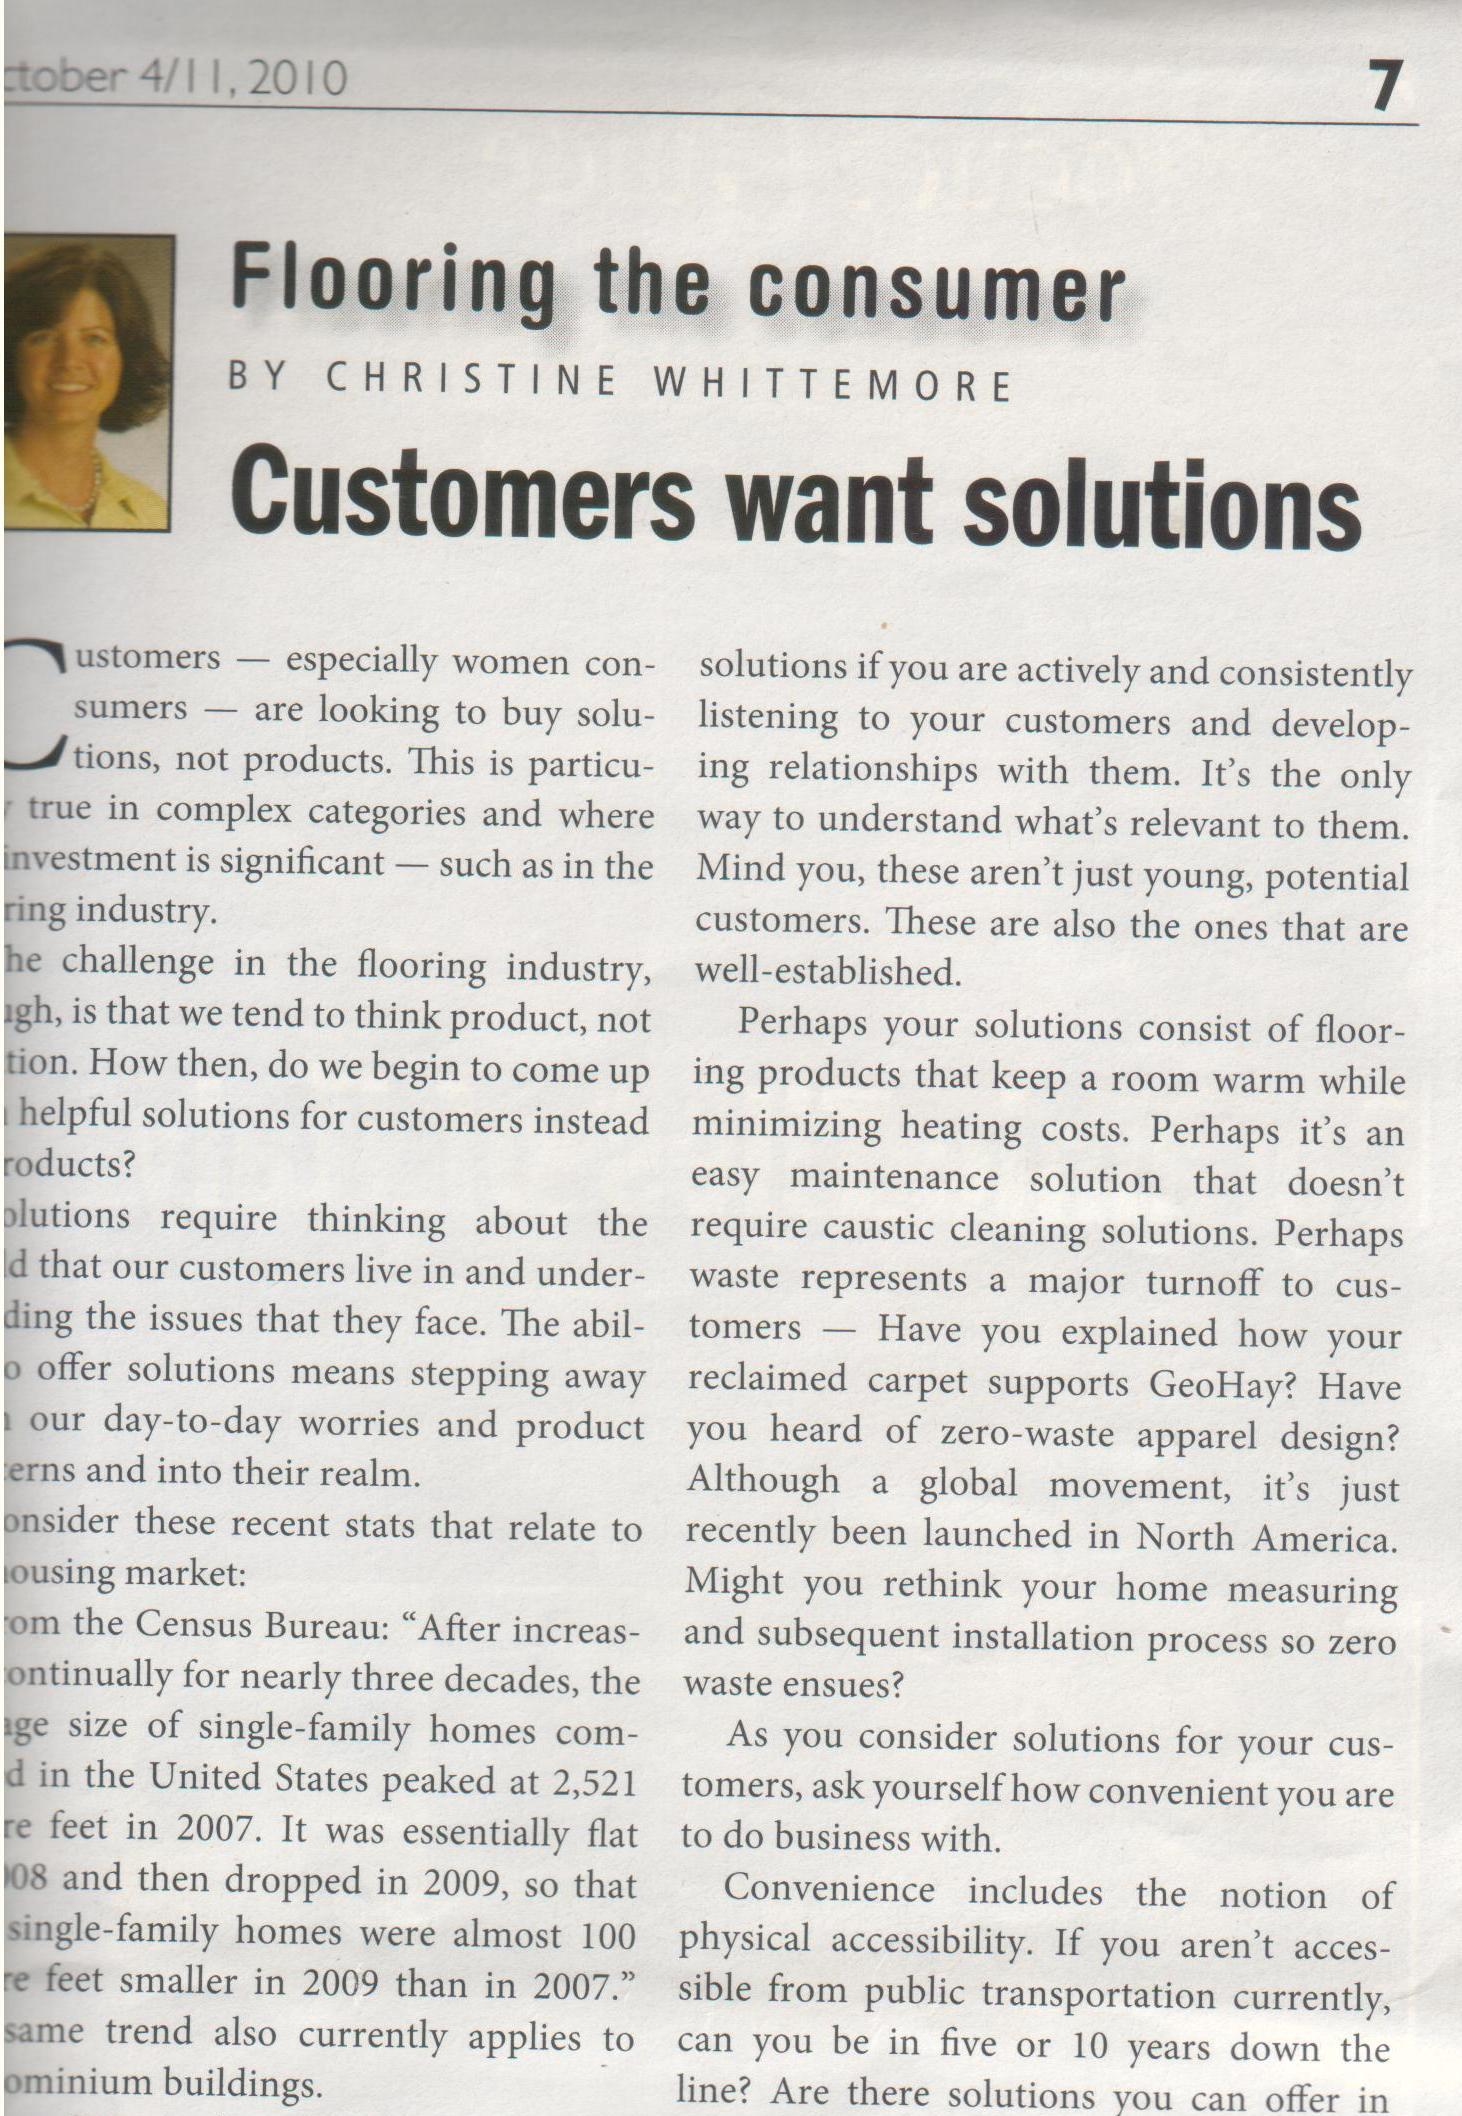 Customers Want Solutions by C.B. Whittemore